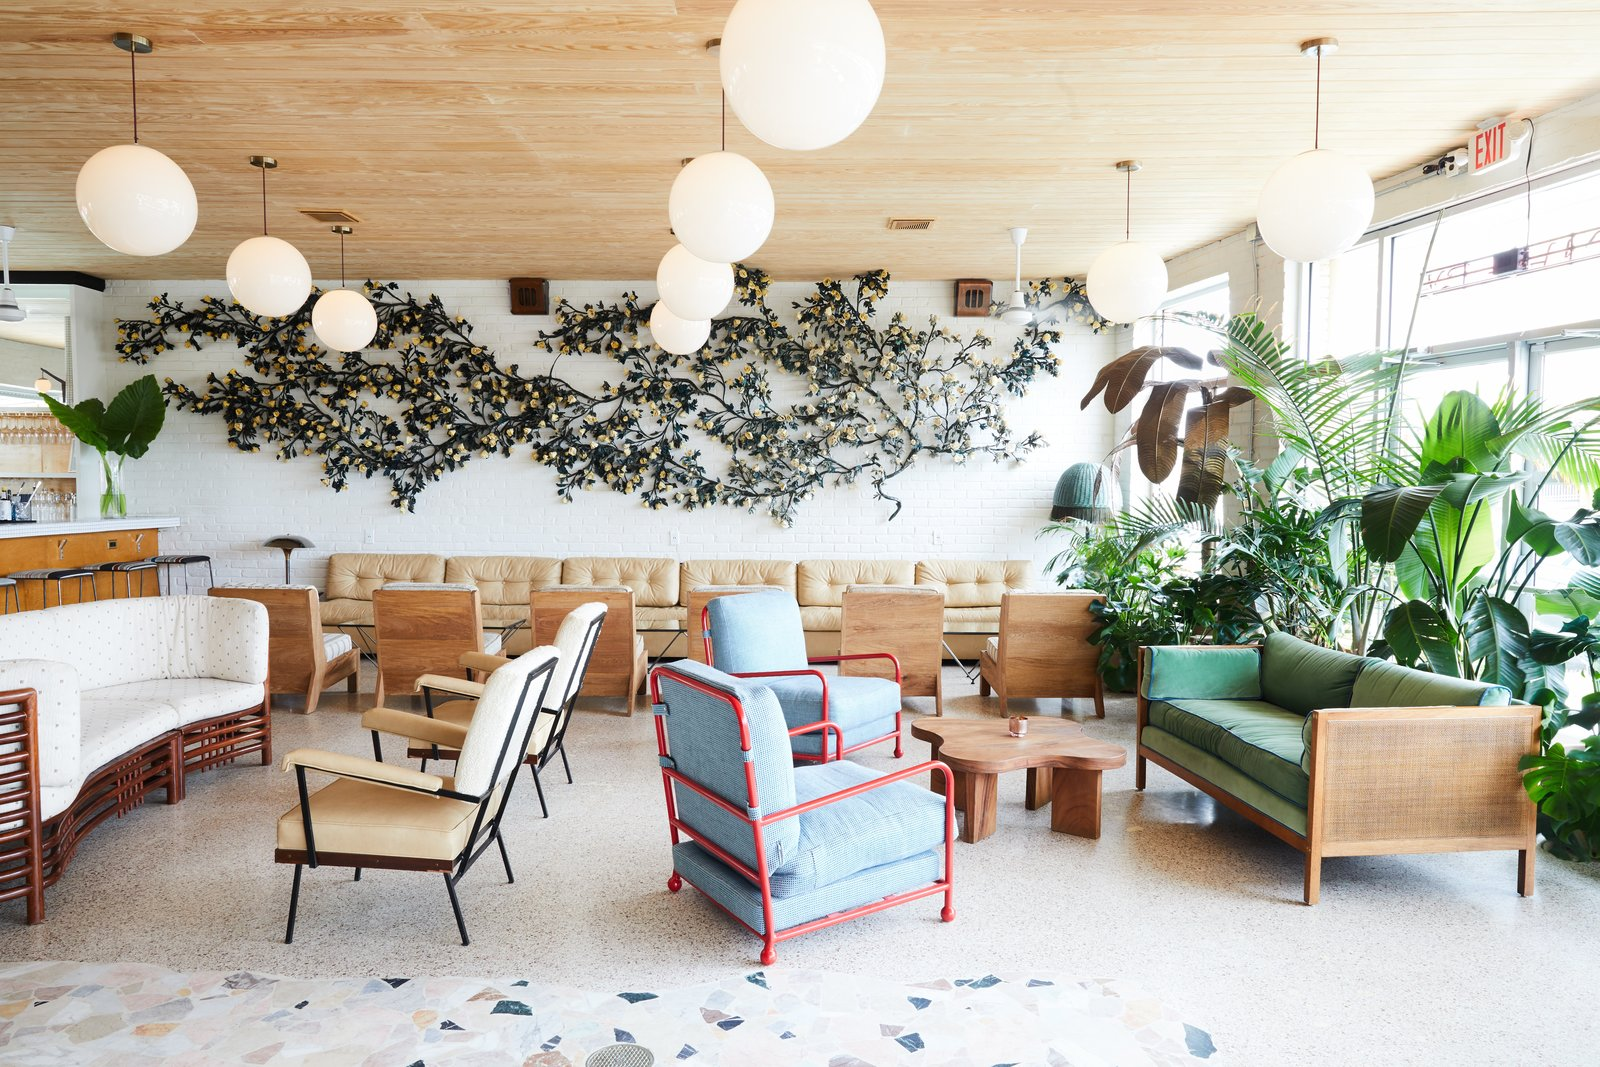 This Revived New Orleans Motel Has Some Serious Flair